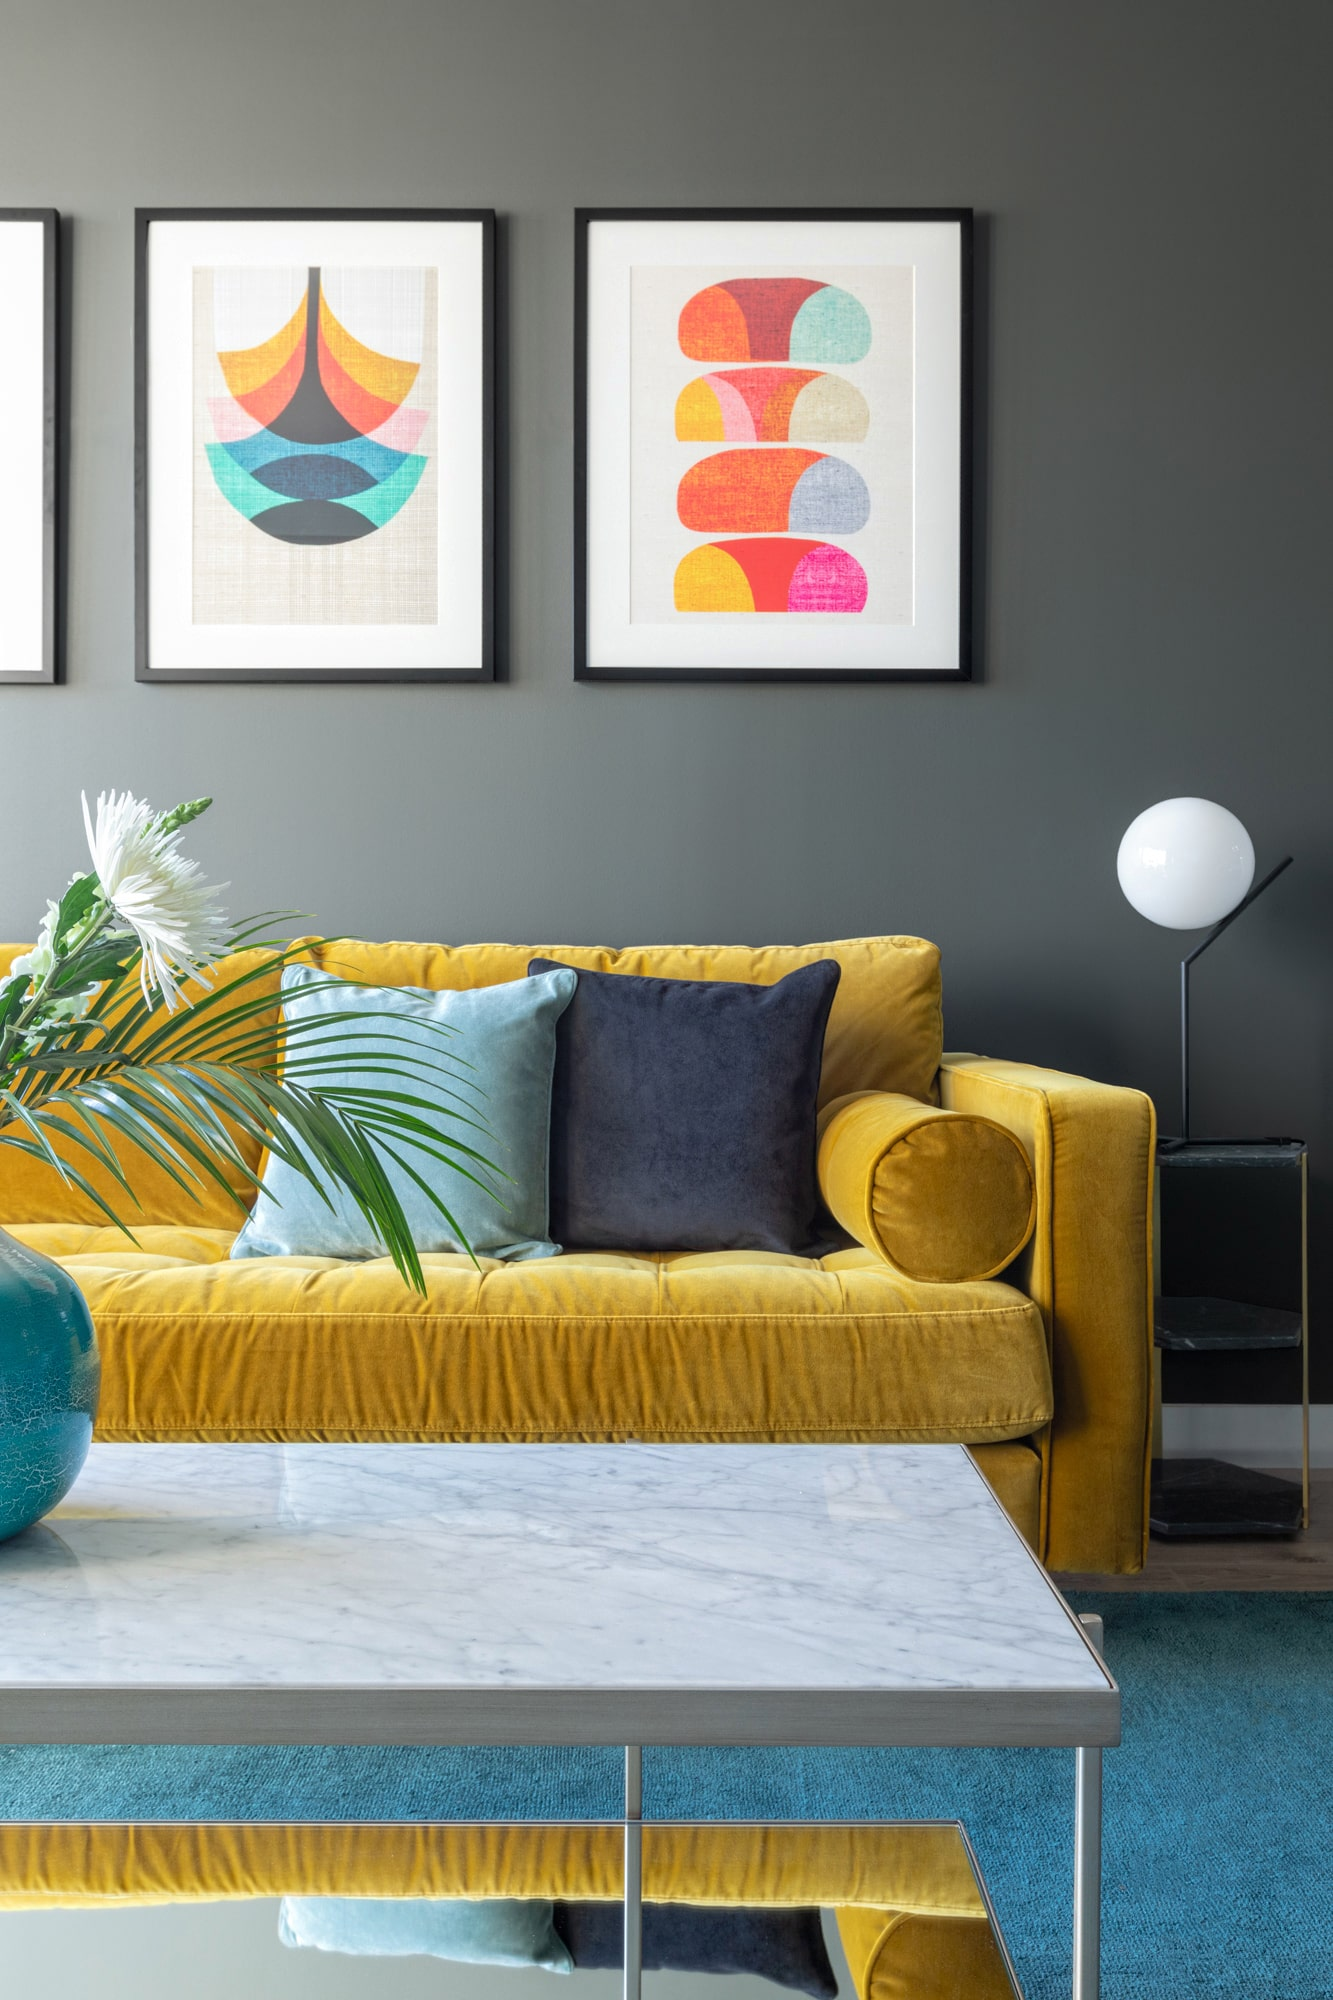 interior design photo of a living room: dark grey walls; yellow velvet sofa, marble coffee table; side table with a lamp